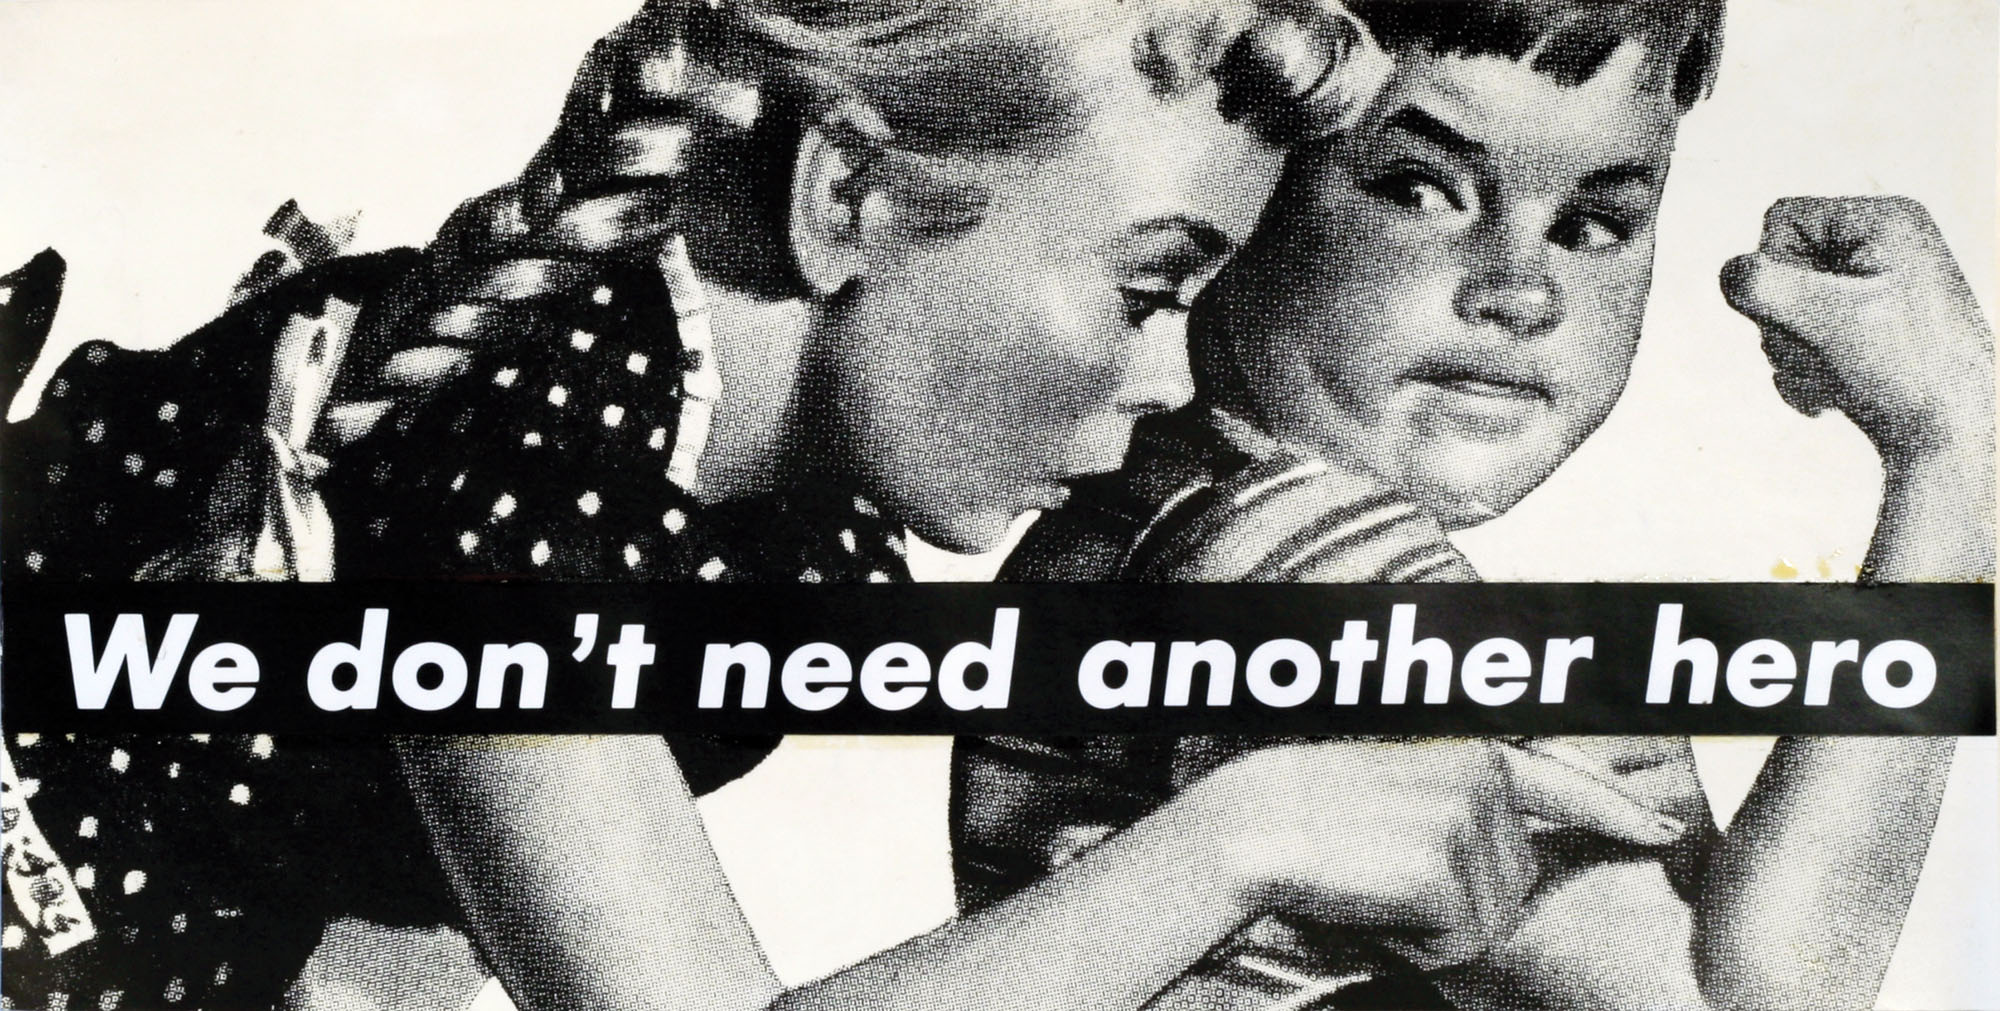 barbara kruger you thrive on mistaken identity art blart barbara kruger untitled we don t need another hero 1987